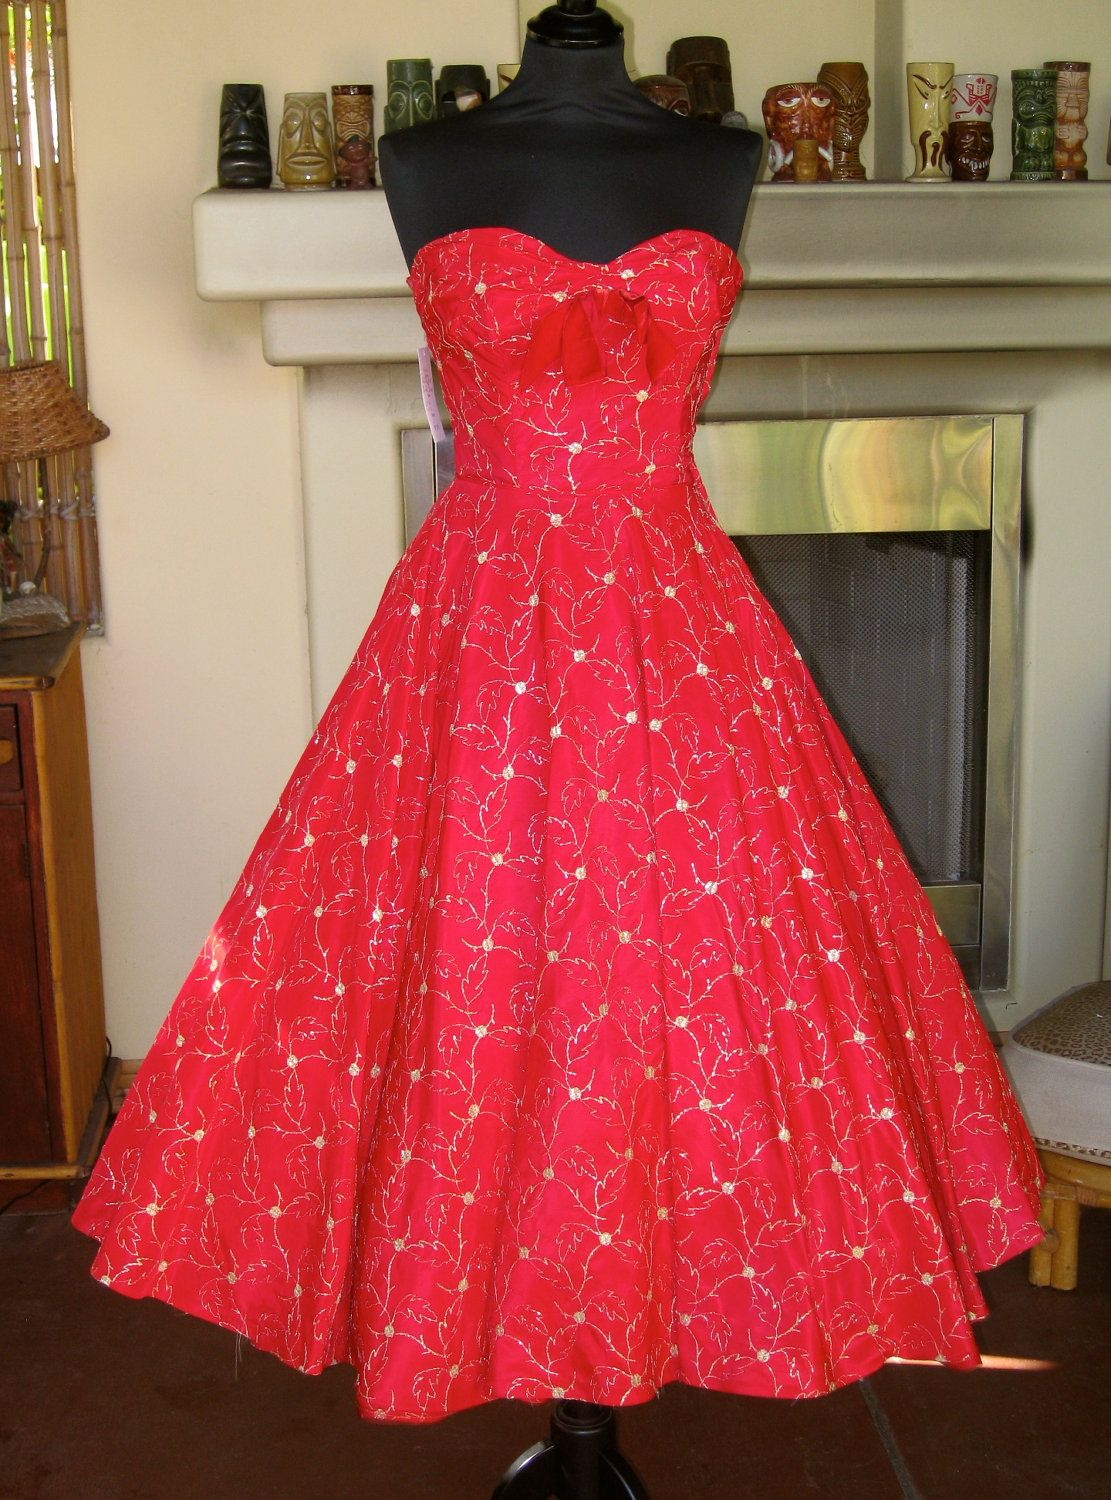 Pin By Samantha Pionnier On Vintage Obsession 1950s Red Dress Vintage 1950s Dresses Red Dress [ 1500 x 1111 Pixel ]